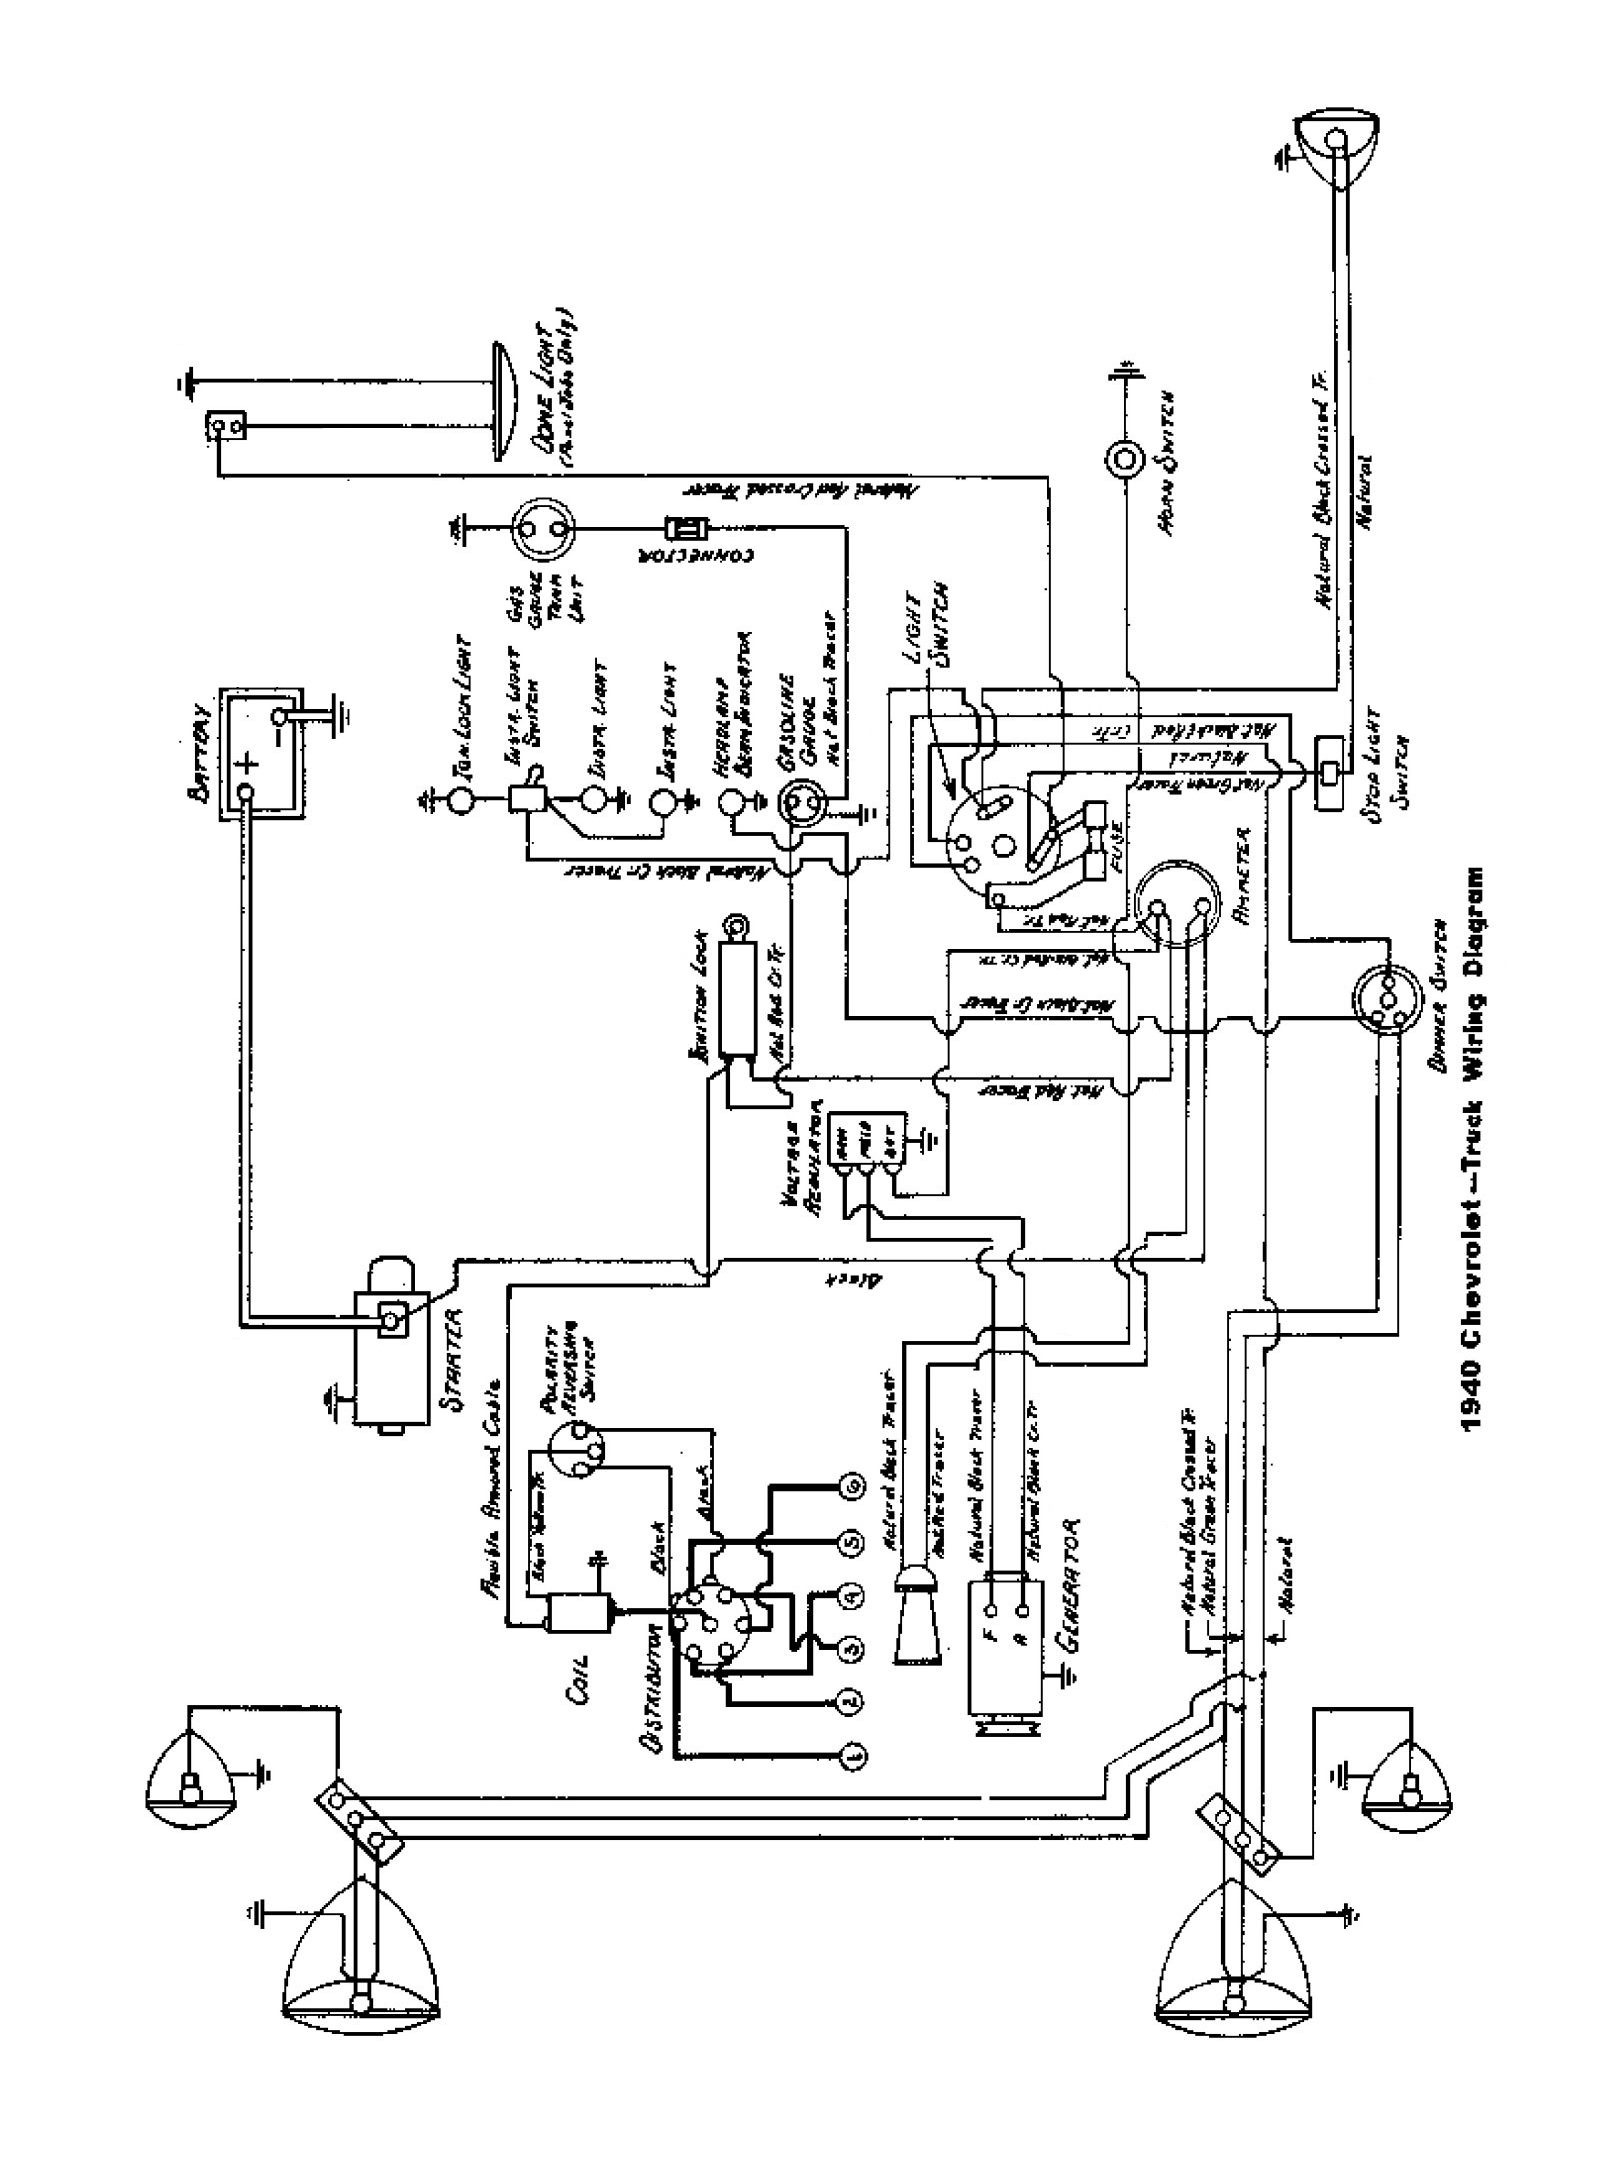 Dana 30 Late additionally HP PartList further Instument Panel Wiring Diagram 1989 Ford F 250 besides Wiring Diagram For 1940 Ford Headlight Switch together with HP PartList. on 1941 ford truck wiring diagram